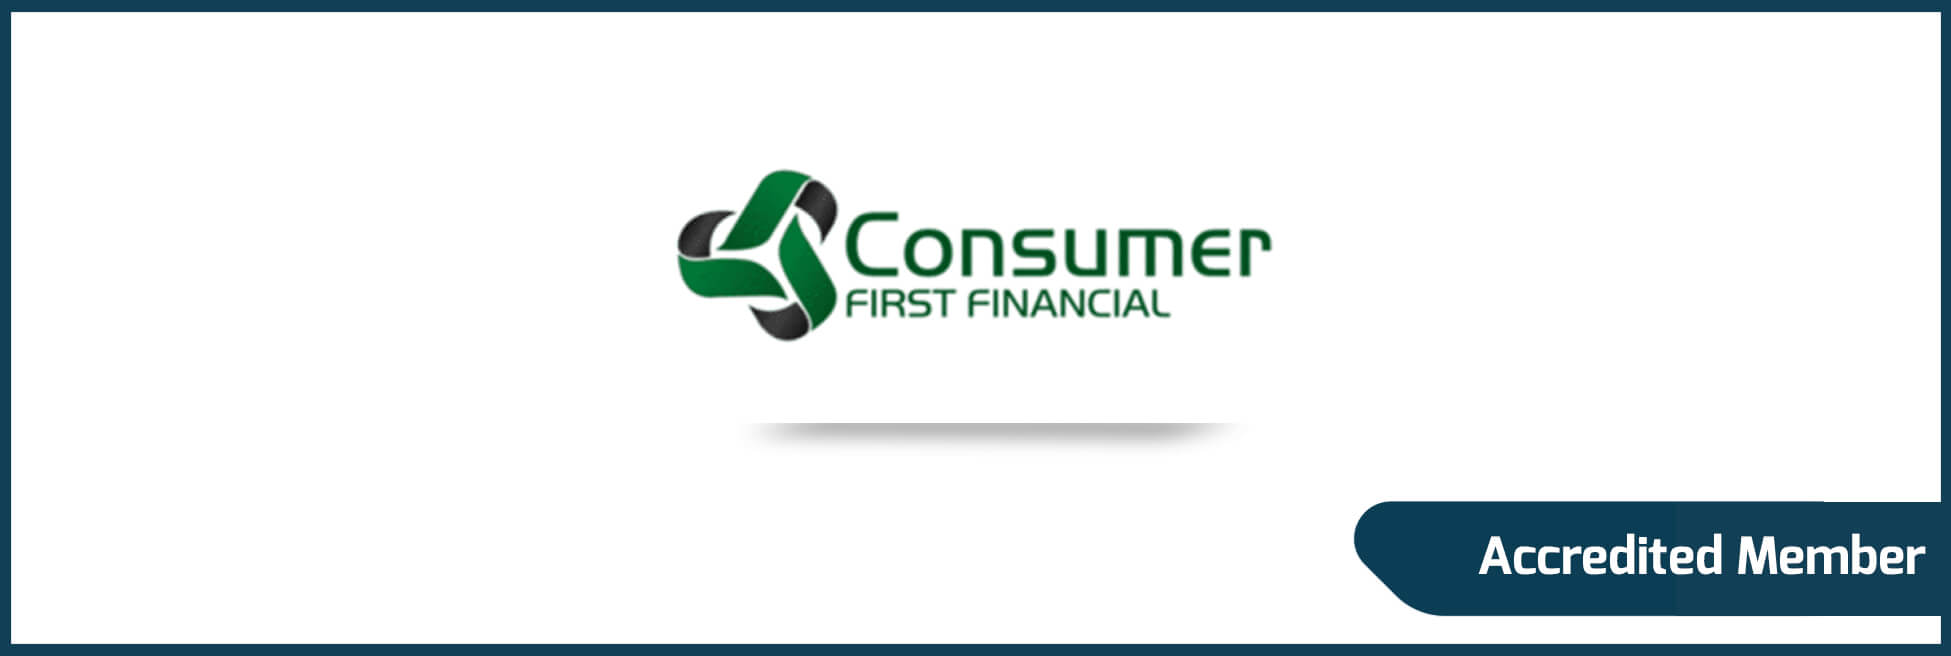 Consumer First Financial, Inc.